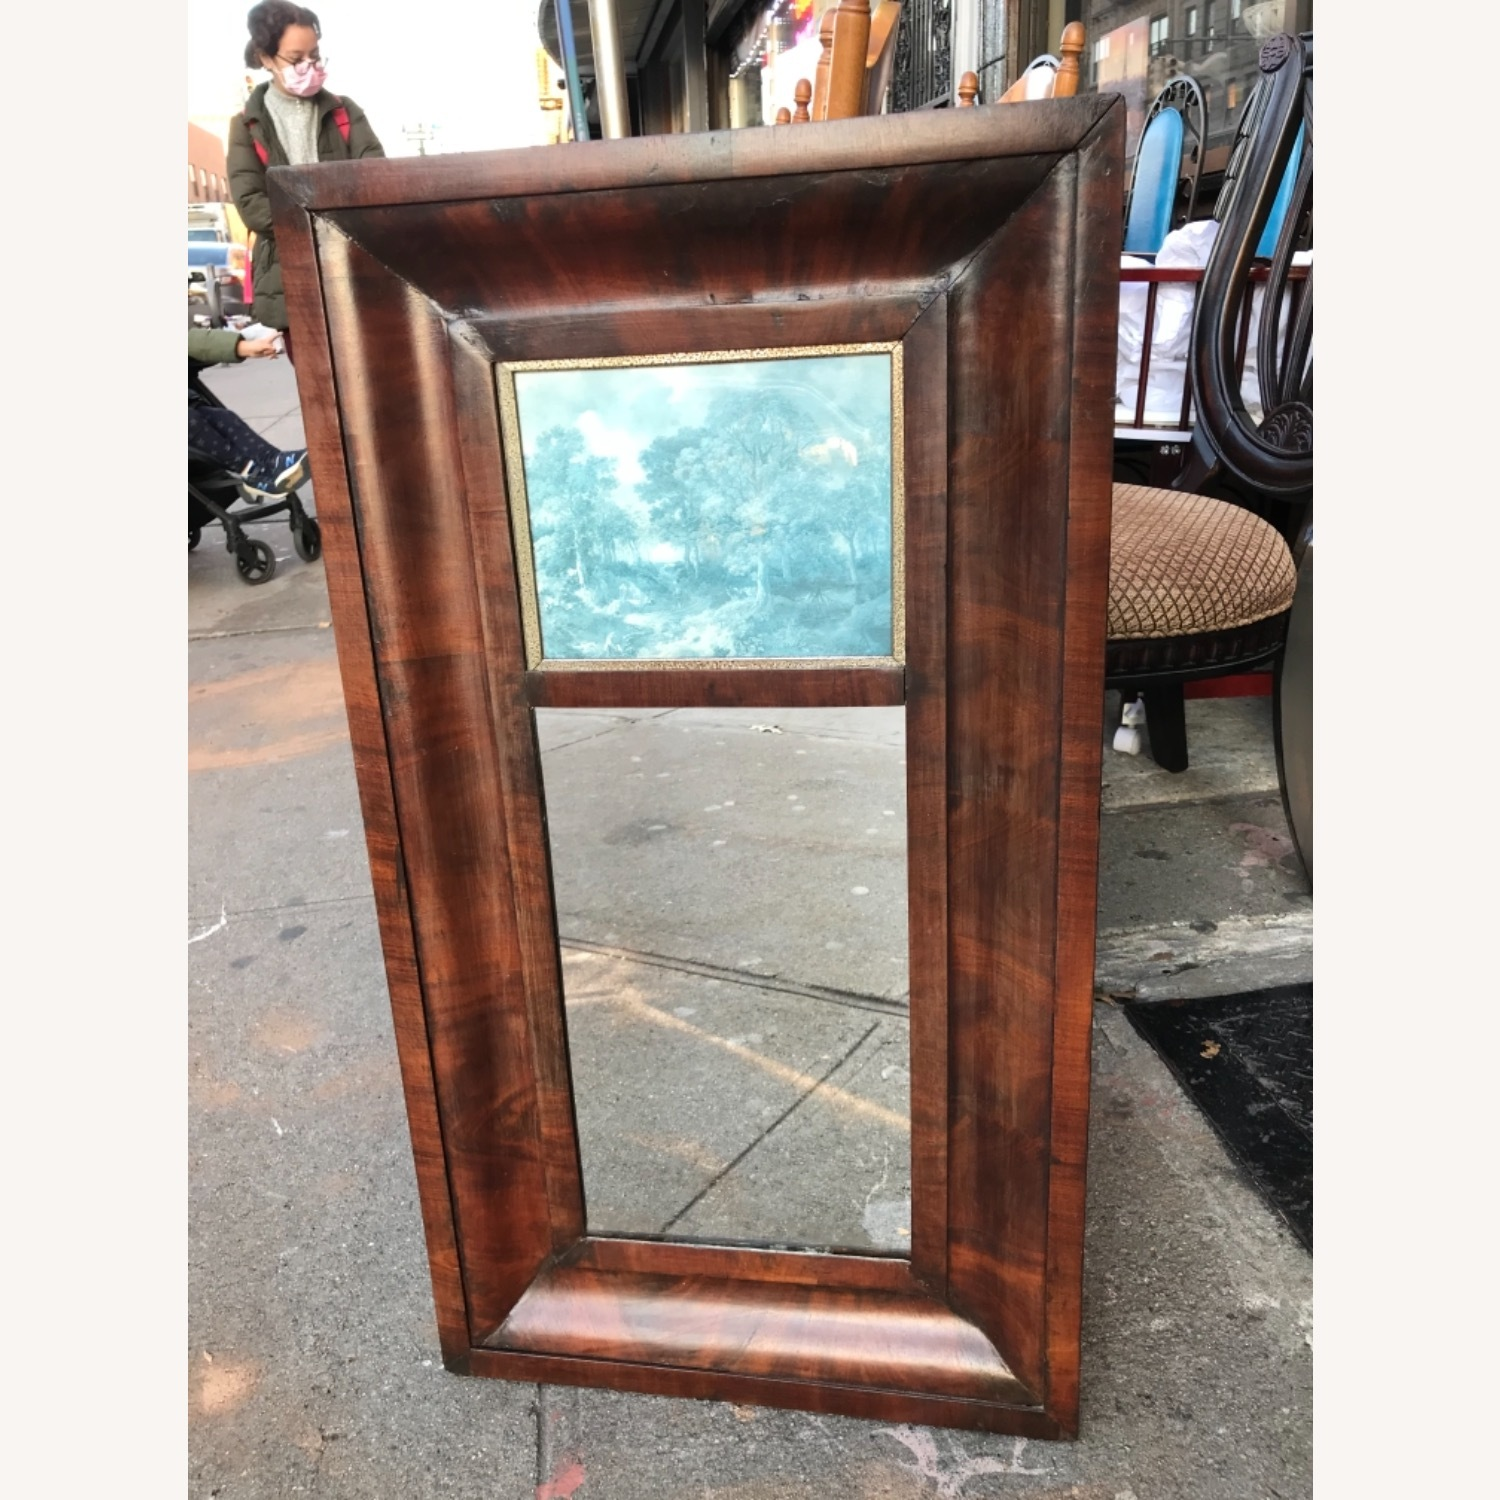 Antique 1900s Mahogany Framed Mirror w/ Picture - image-2